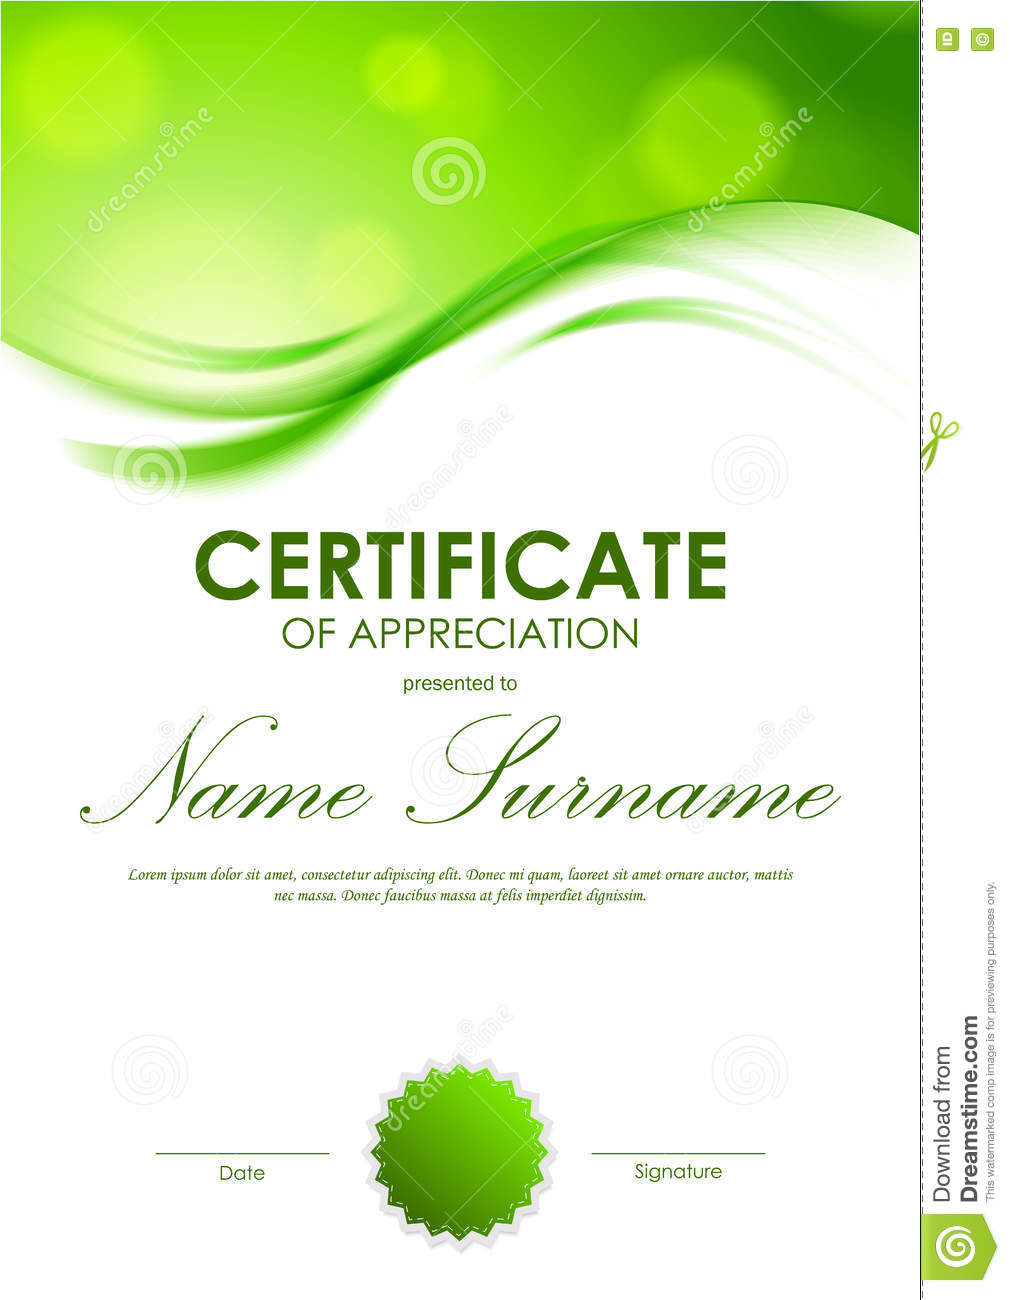 Certificate Appreciation Template Stock Vector